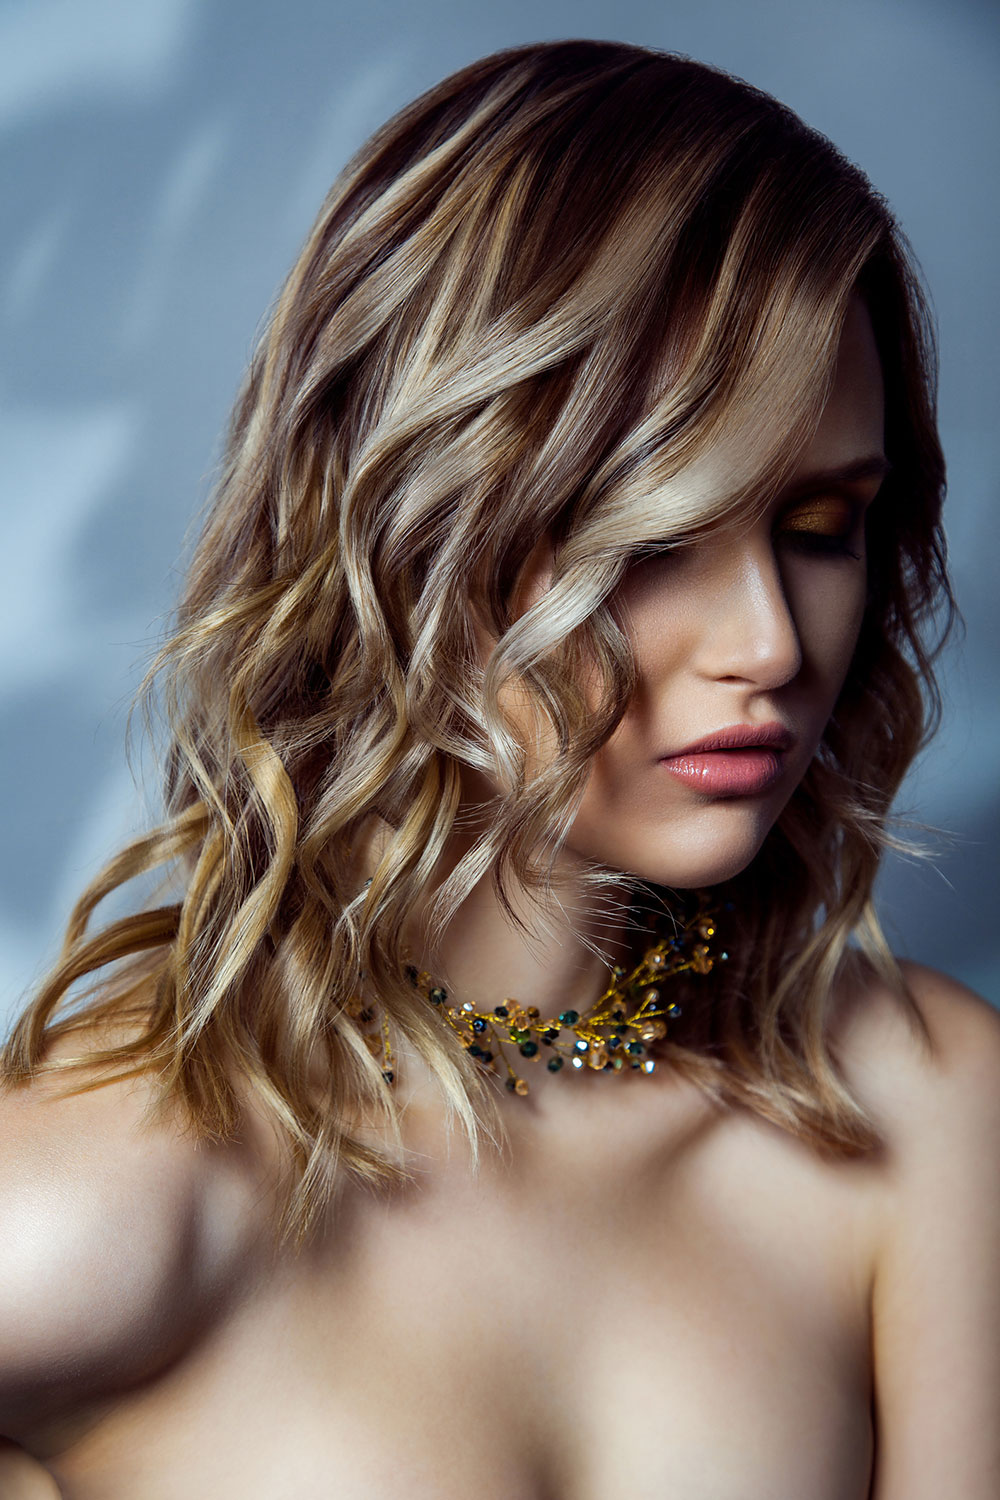 Loose natural waves mid length hairstyle